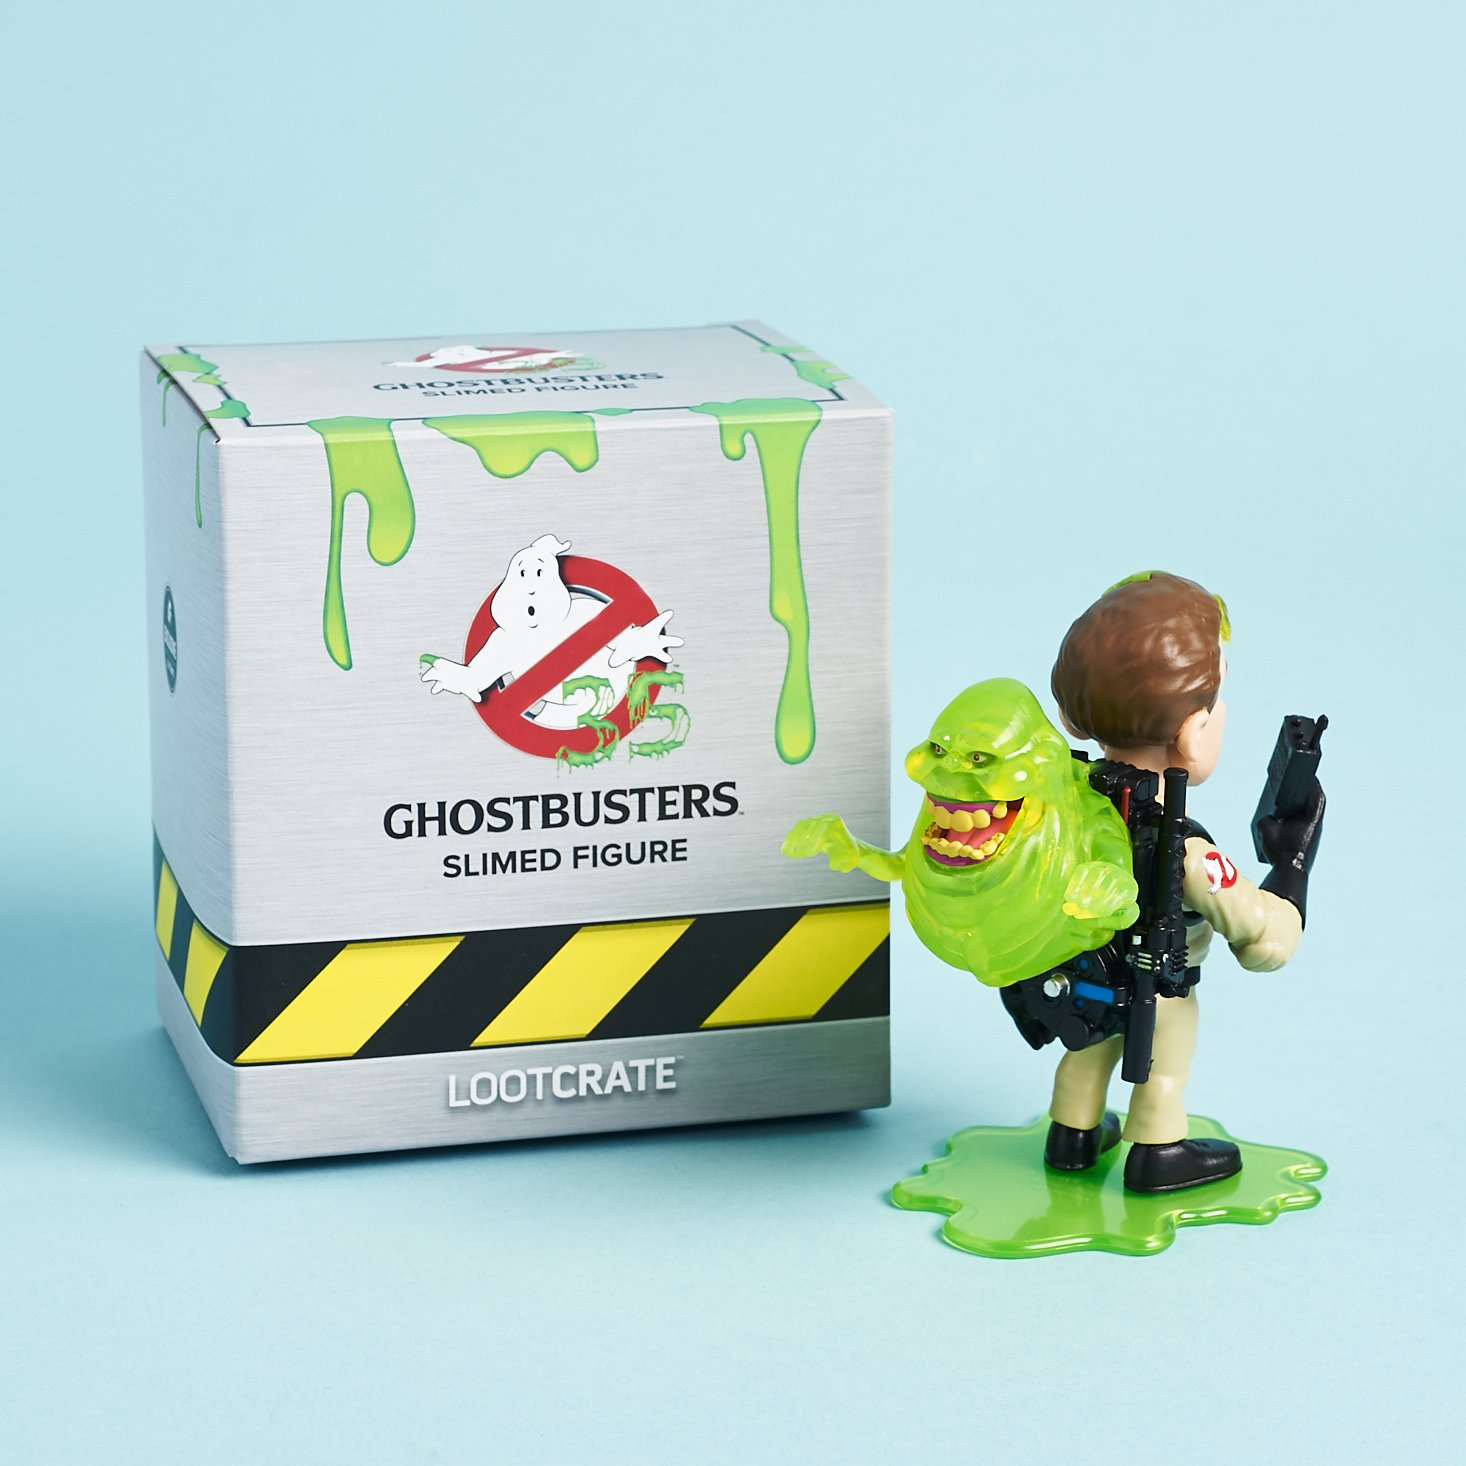 ghost busters figurine